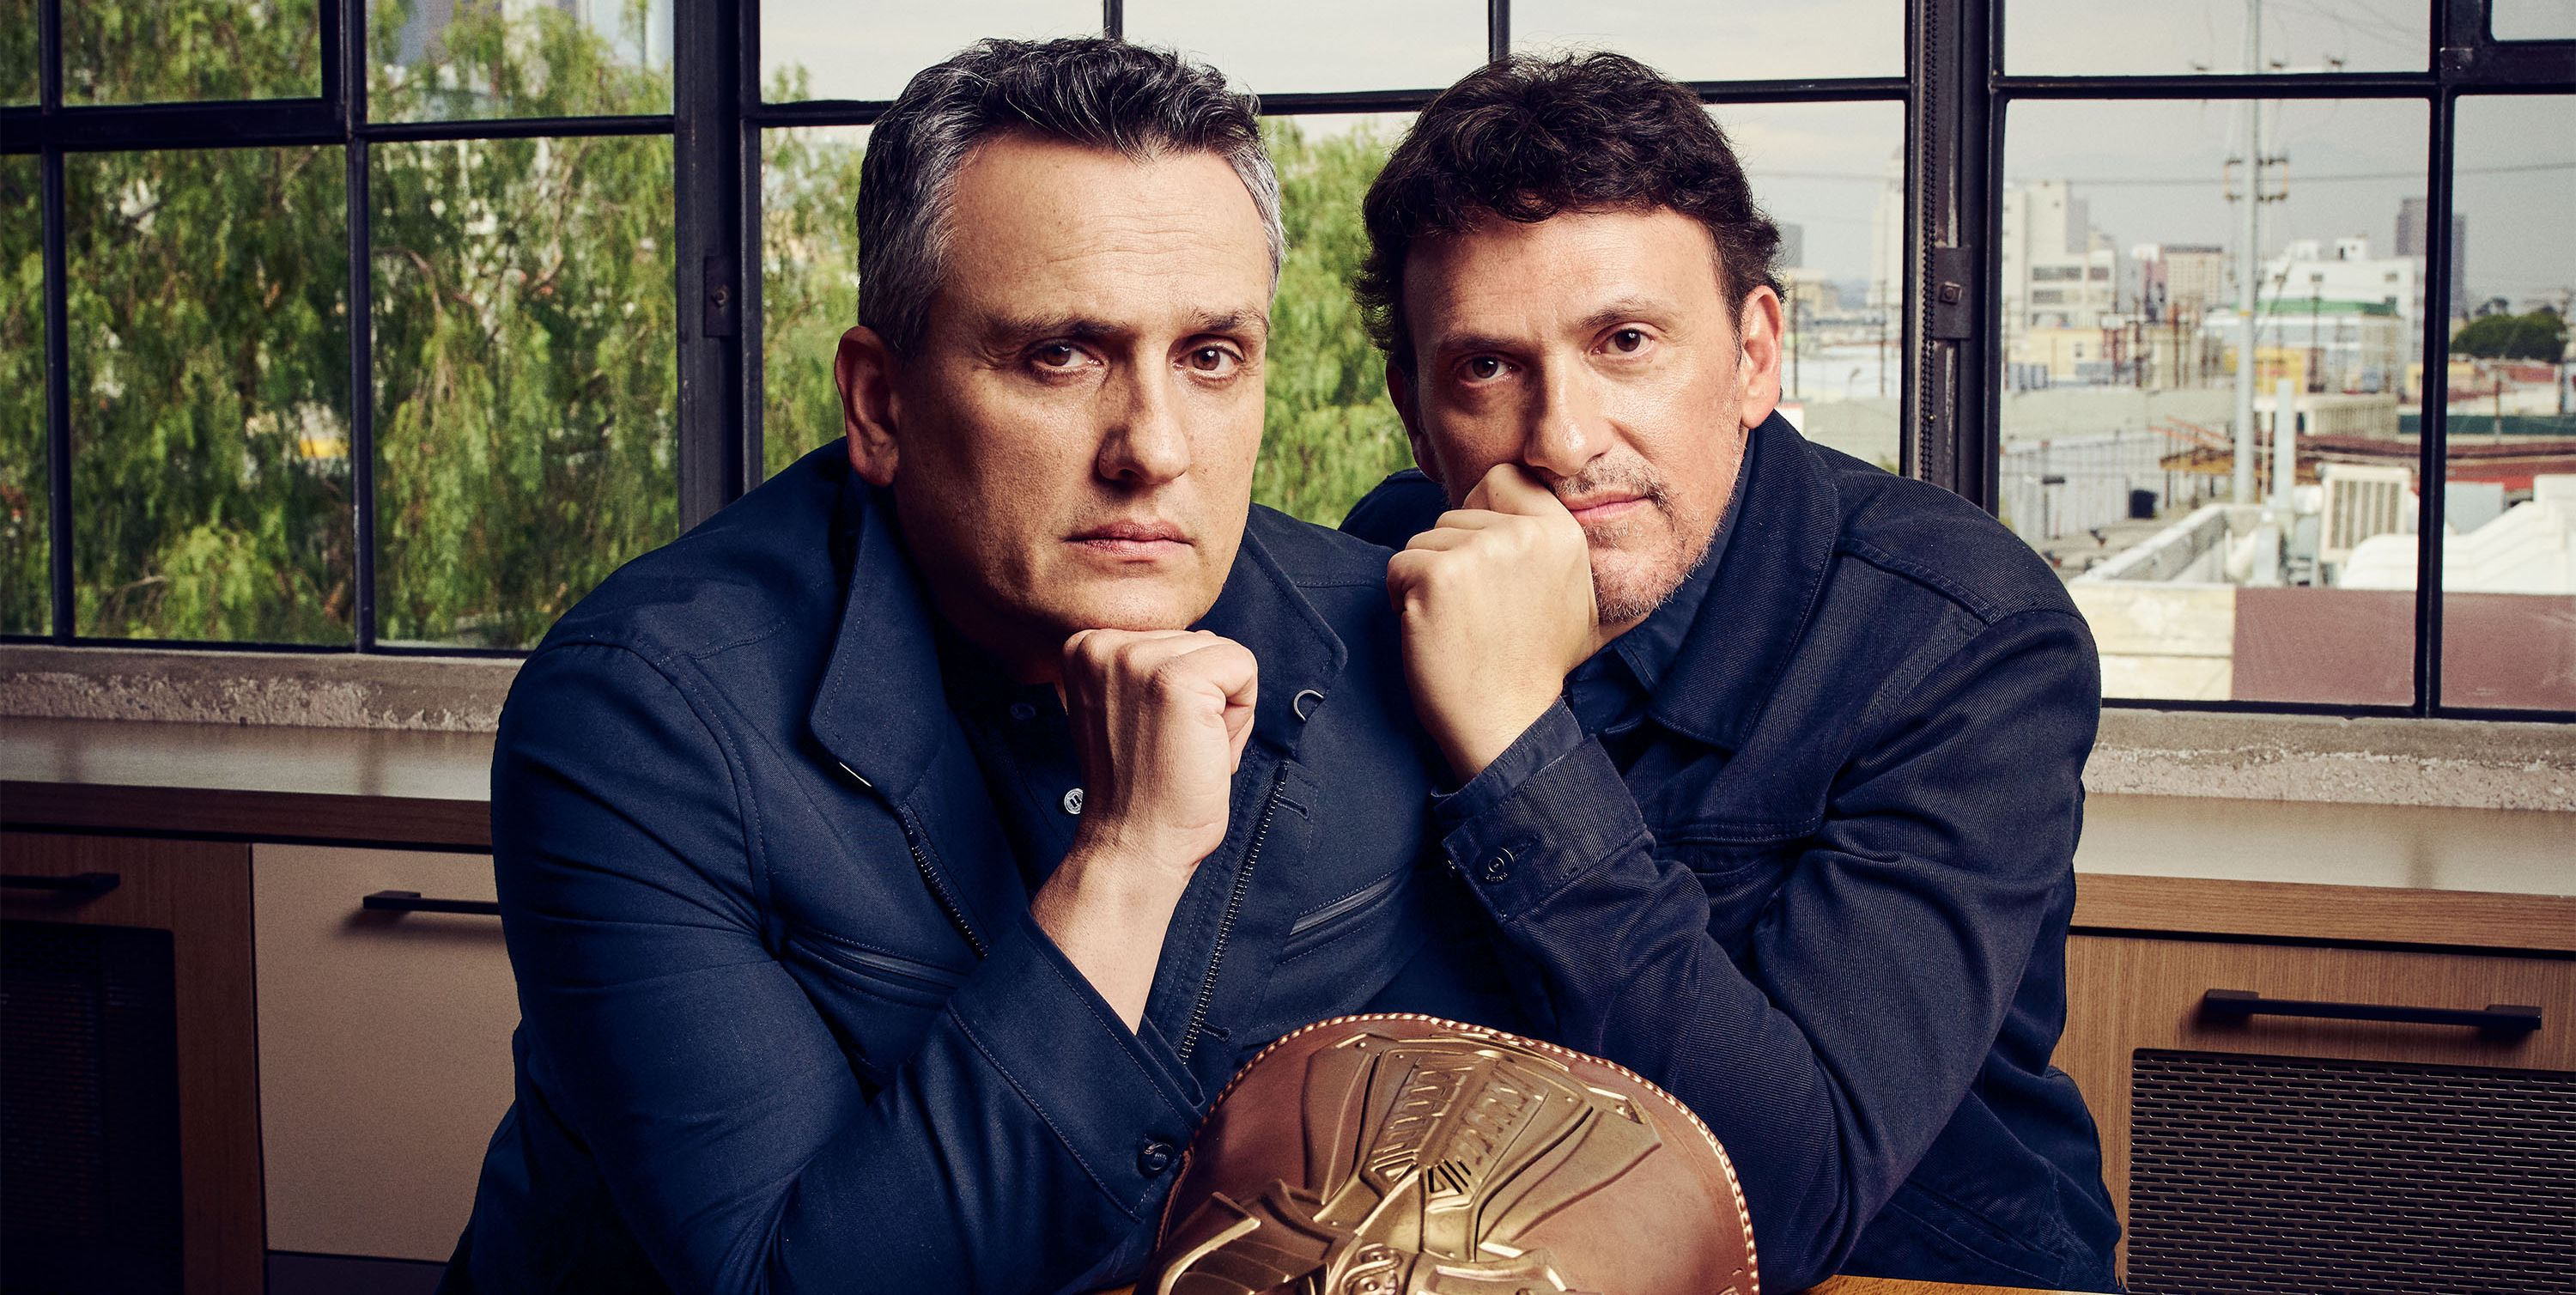 To hear Joe and Anthony Russo tell it, they're just two hardworking brothers from Cleveland who directed four of the biggest Marvel spectaculars, including Avengers: Endgame. Now they are taking on an even greater challenge: building a new studio from scratch.